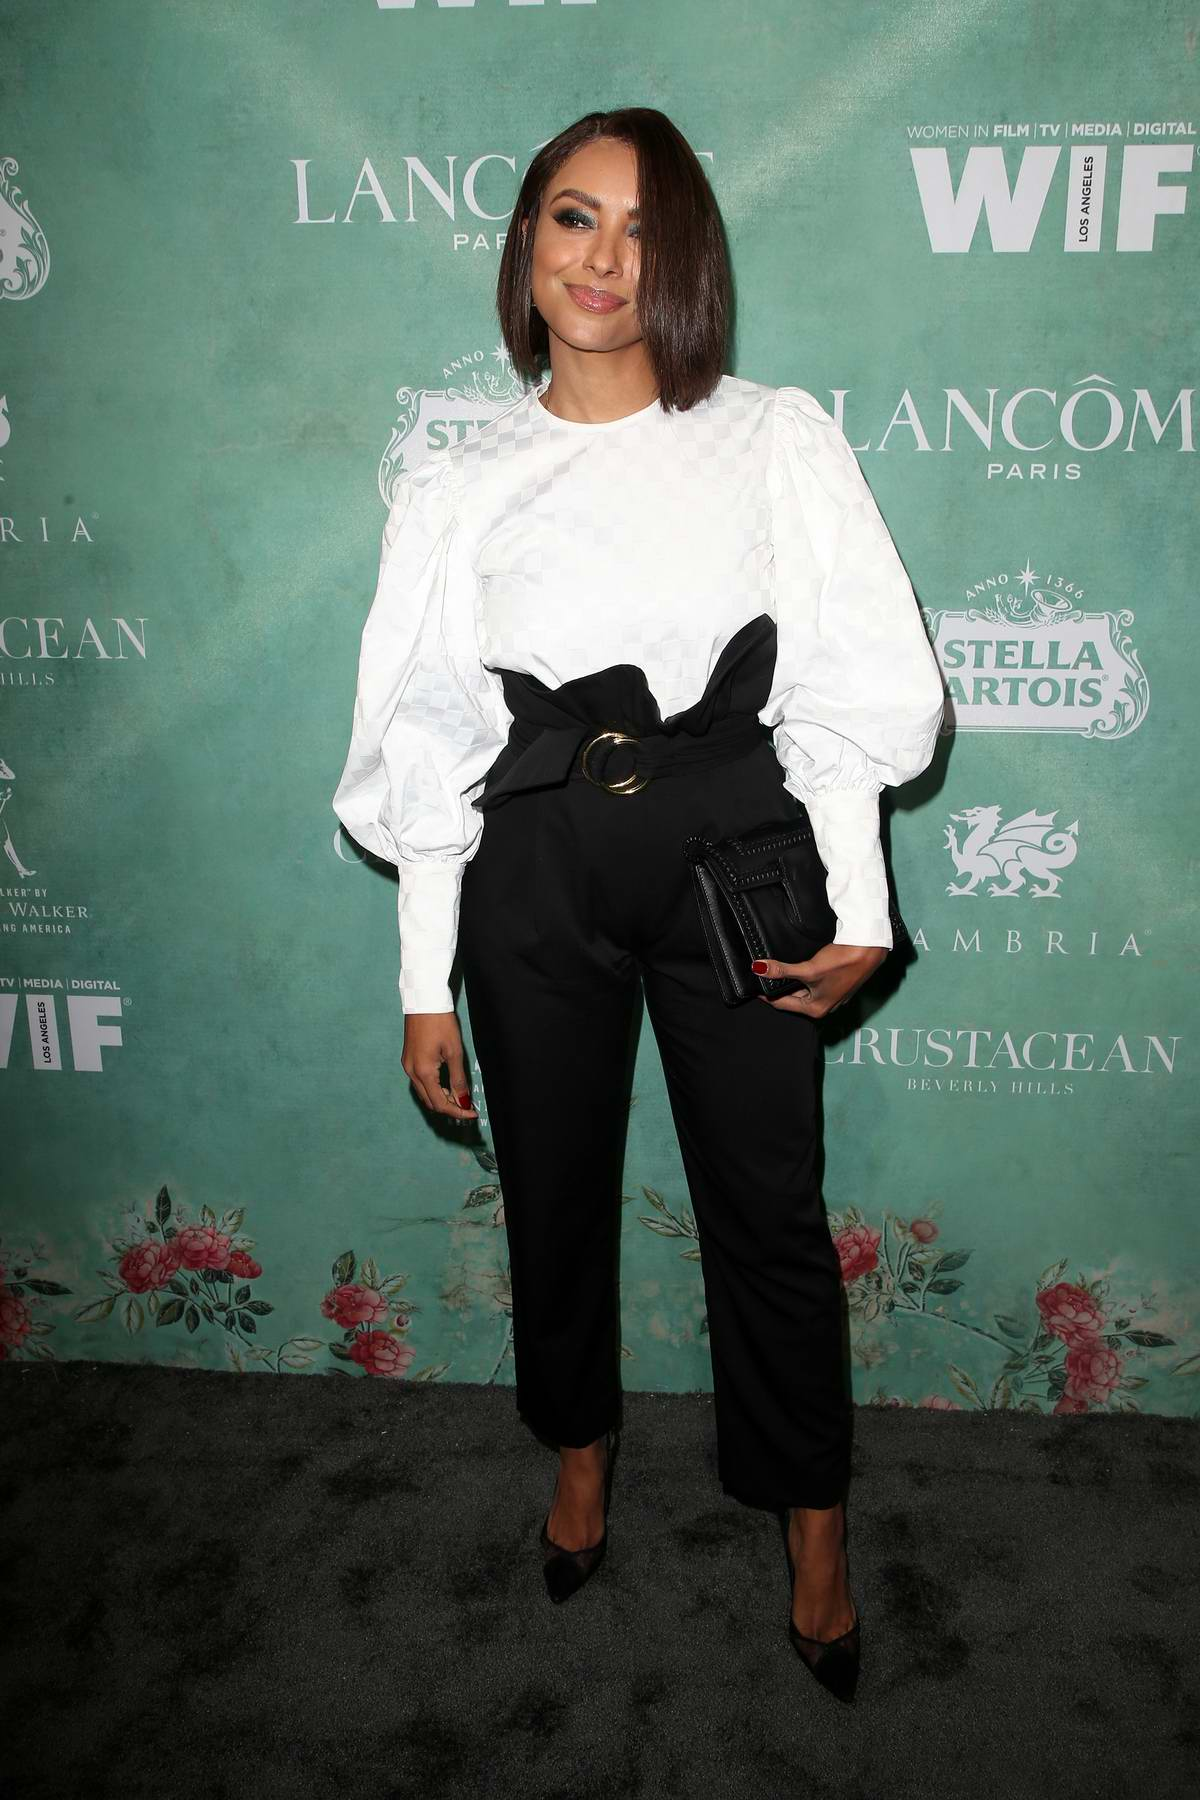 Kat Graham attends the 11th Annual Women In Film Pre-Oscar Cocktail Party at Crustacean in Beverly Hills, Los Angeles